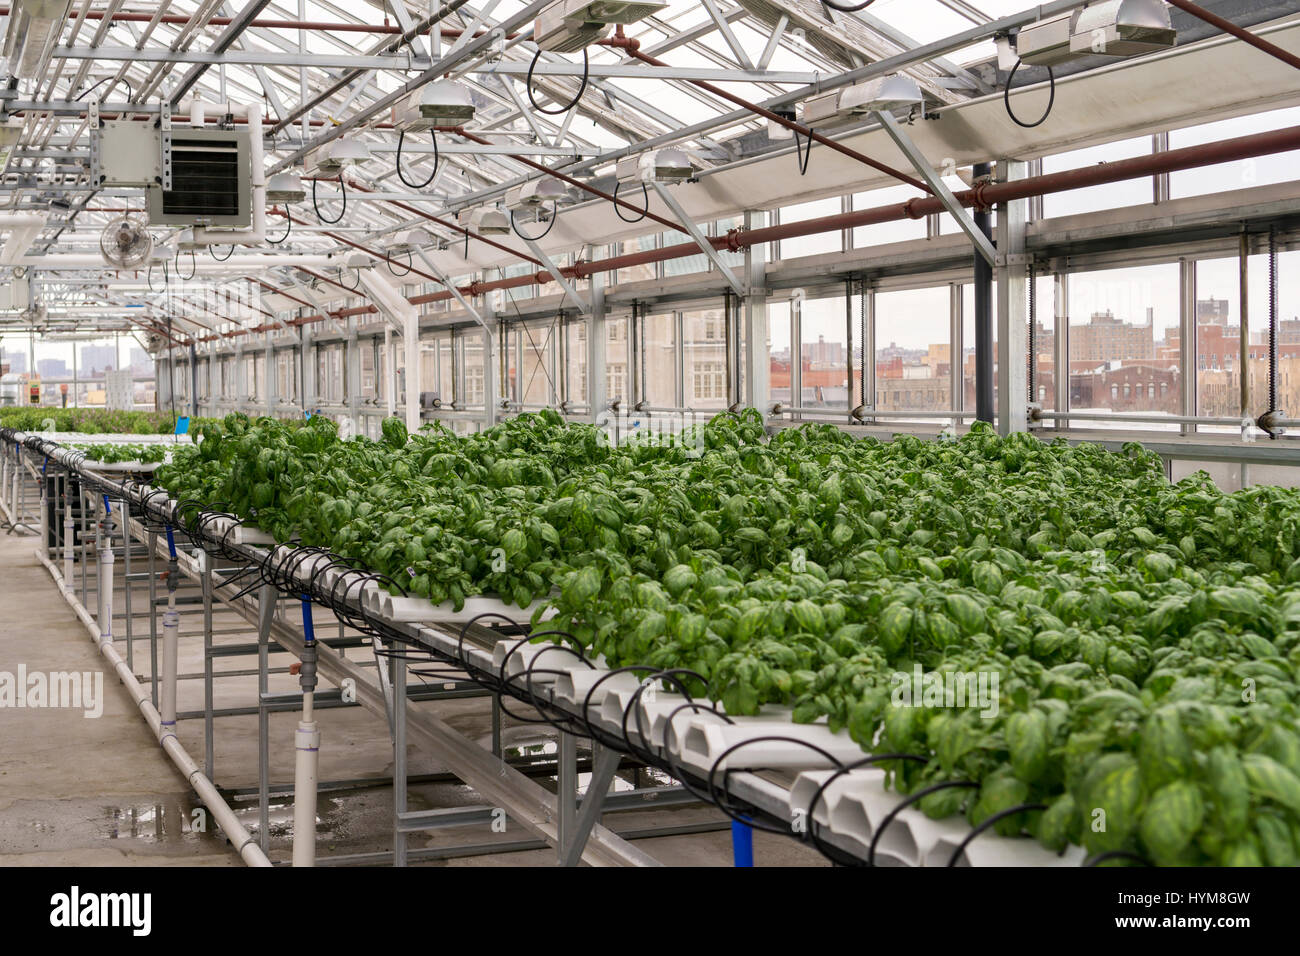 The greenhouse nyc - Hydroponic Farming Of Basil Is Seen On A Rooftop Greenhouse On The Roof Of An Affordable Housing Building In The Bronx In New York On Thursday March 30